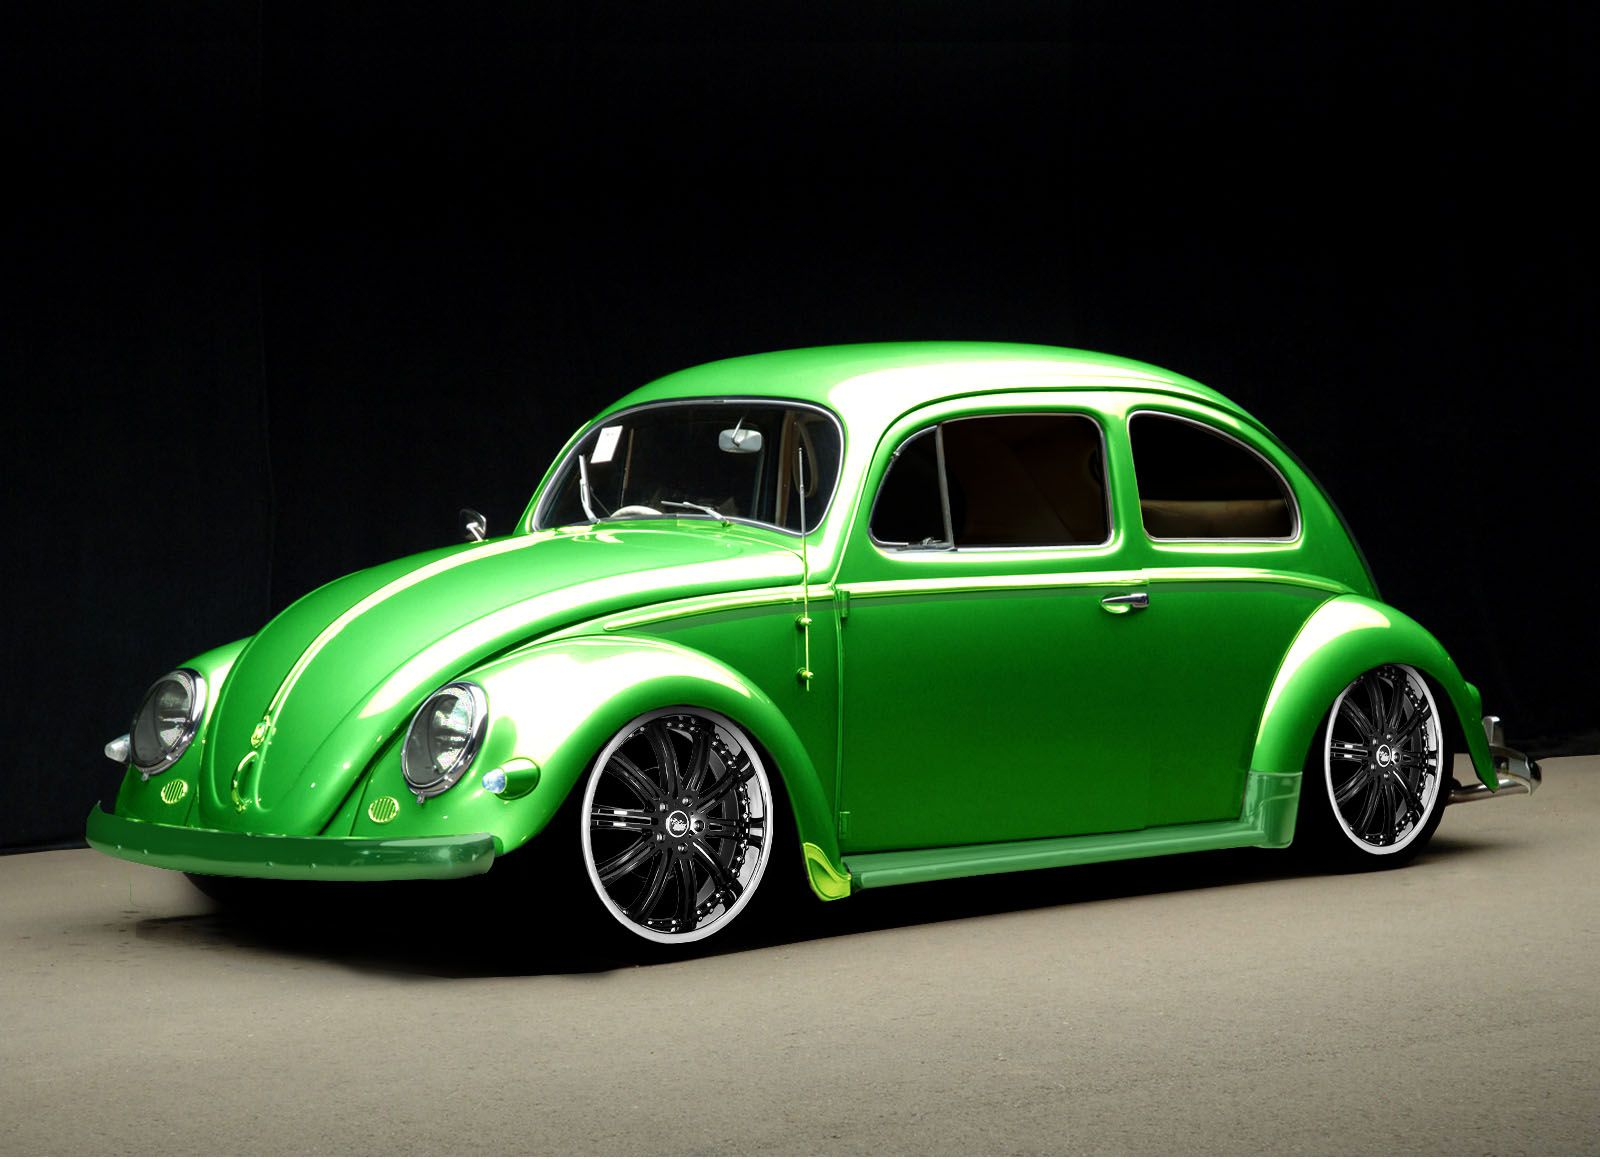 Tuning Old Car VW Beetle Digital Customisation Vw